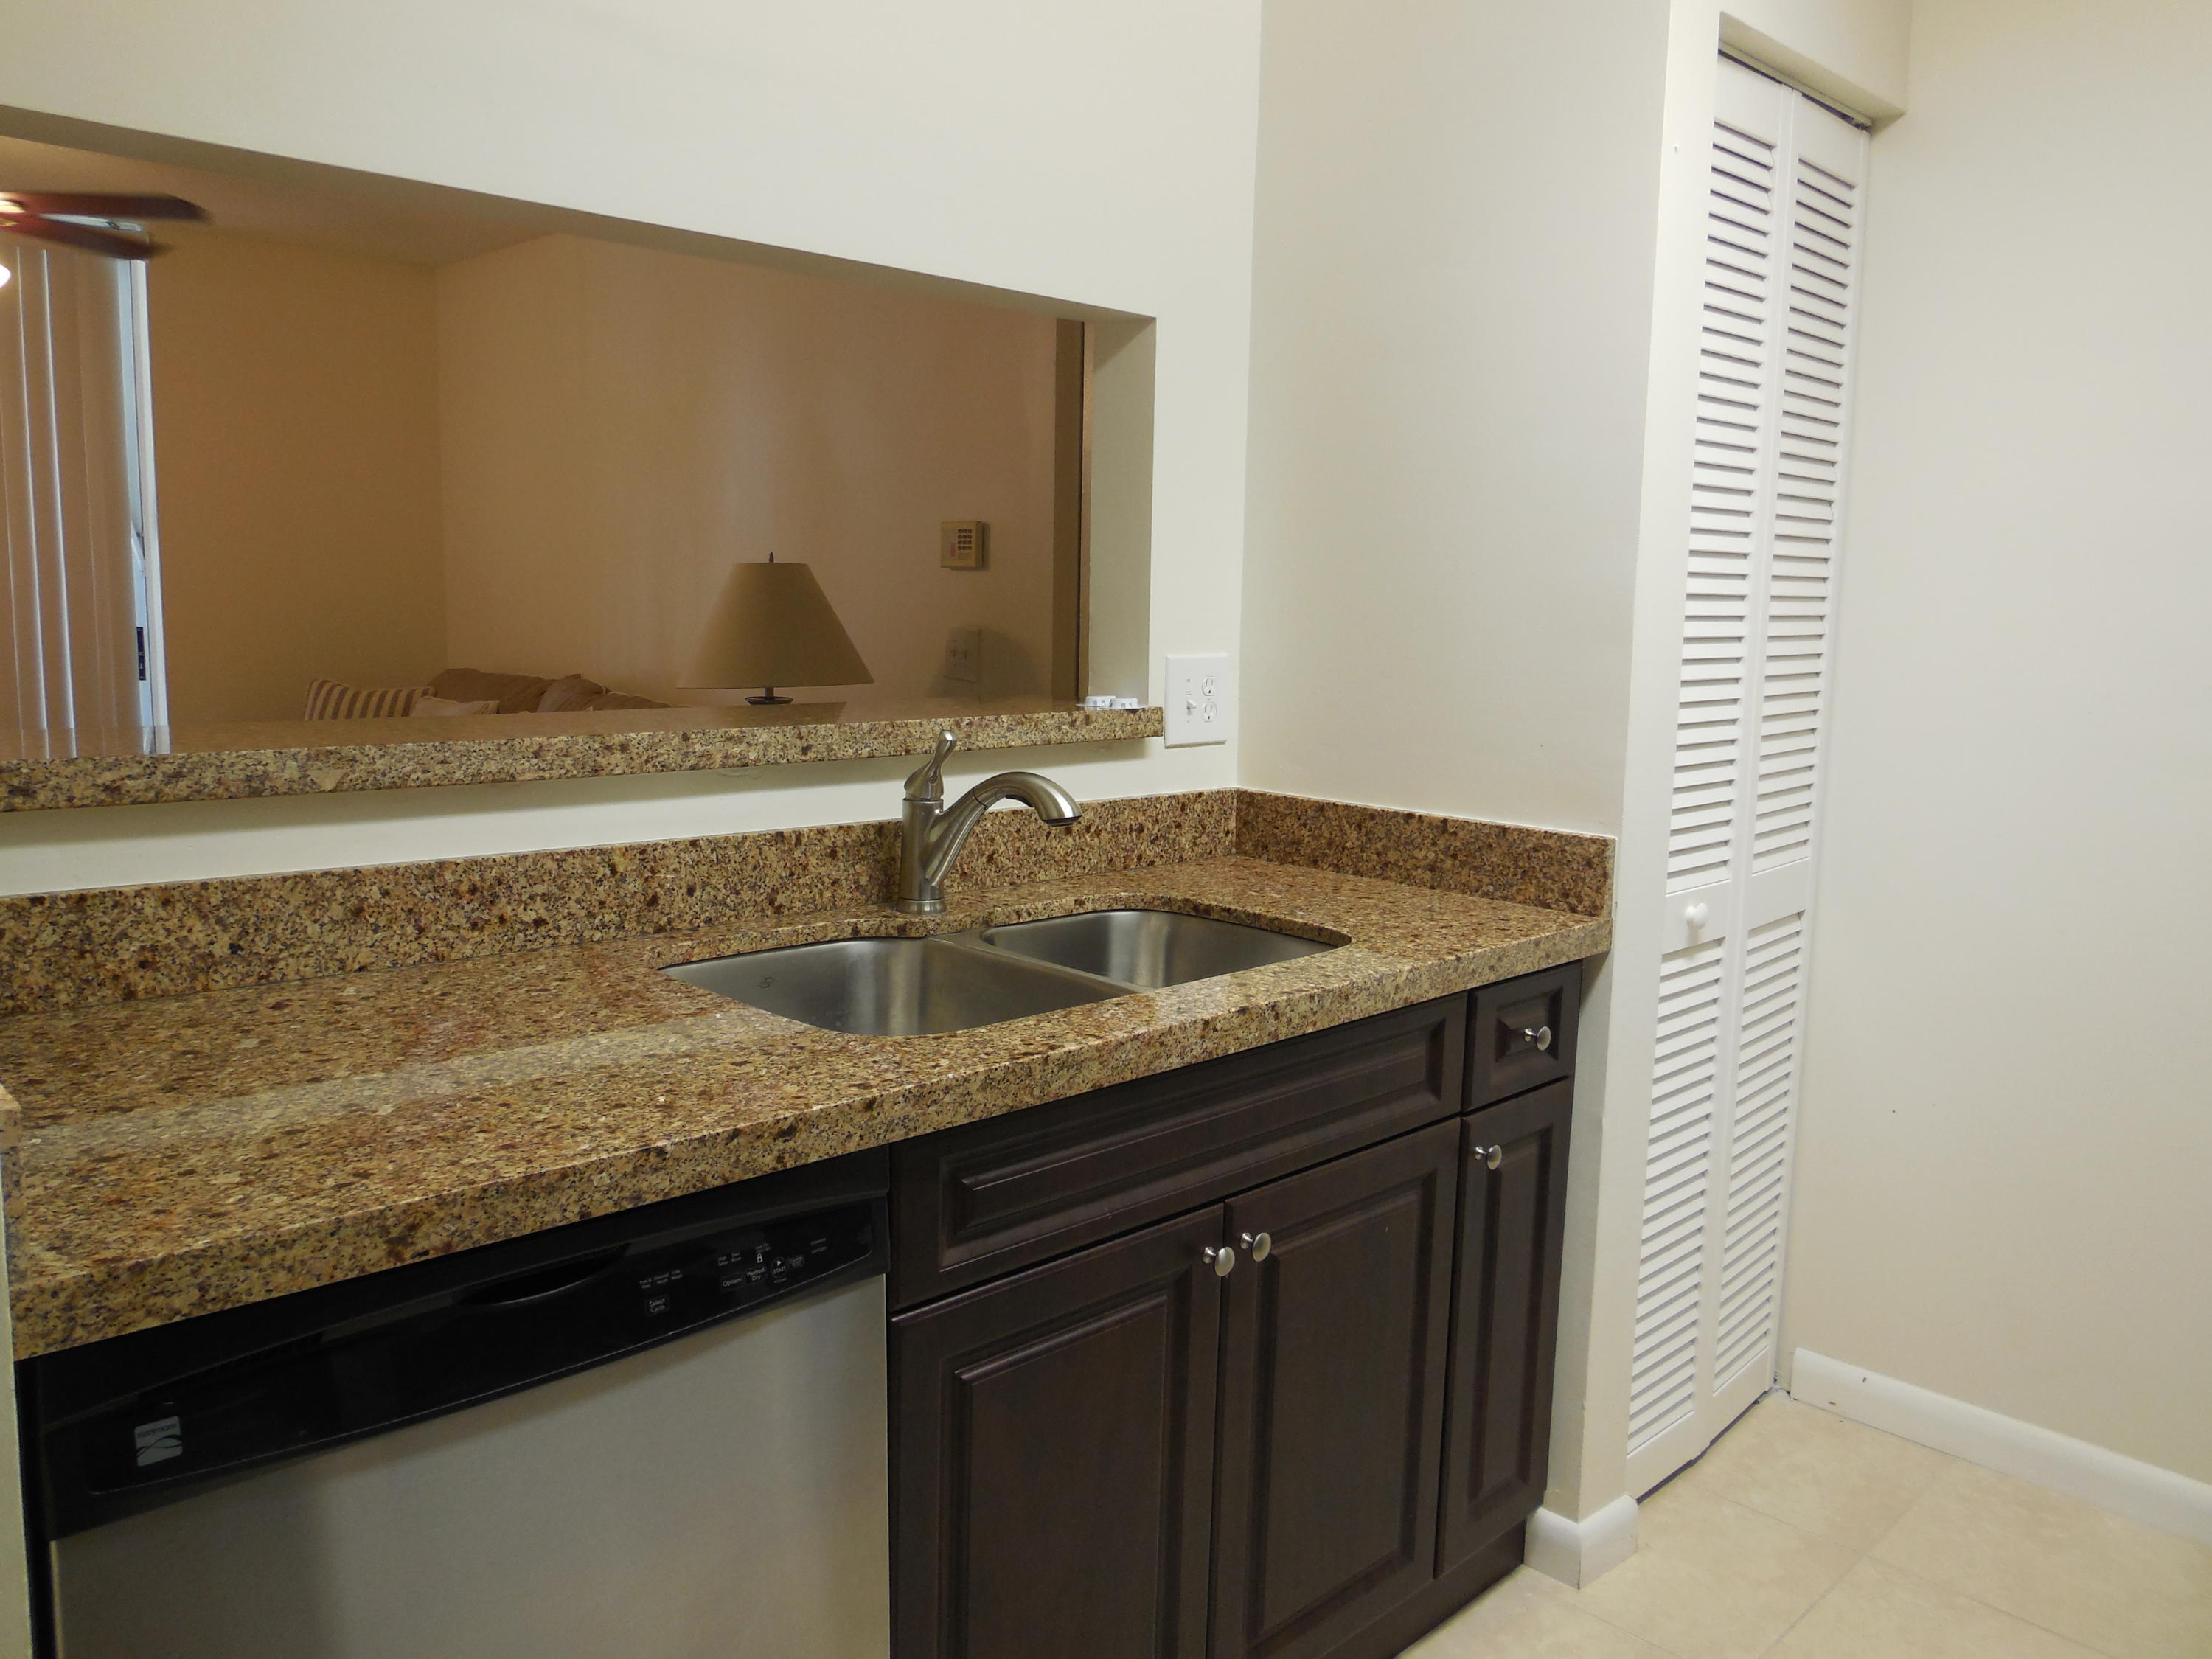 ... Located In West Palm Beach. This Furnished Second Floor Condo Is Ready  To Move In. Newer Stainless Steel Appliances In Kitchen With Granite  Countertops.